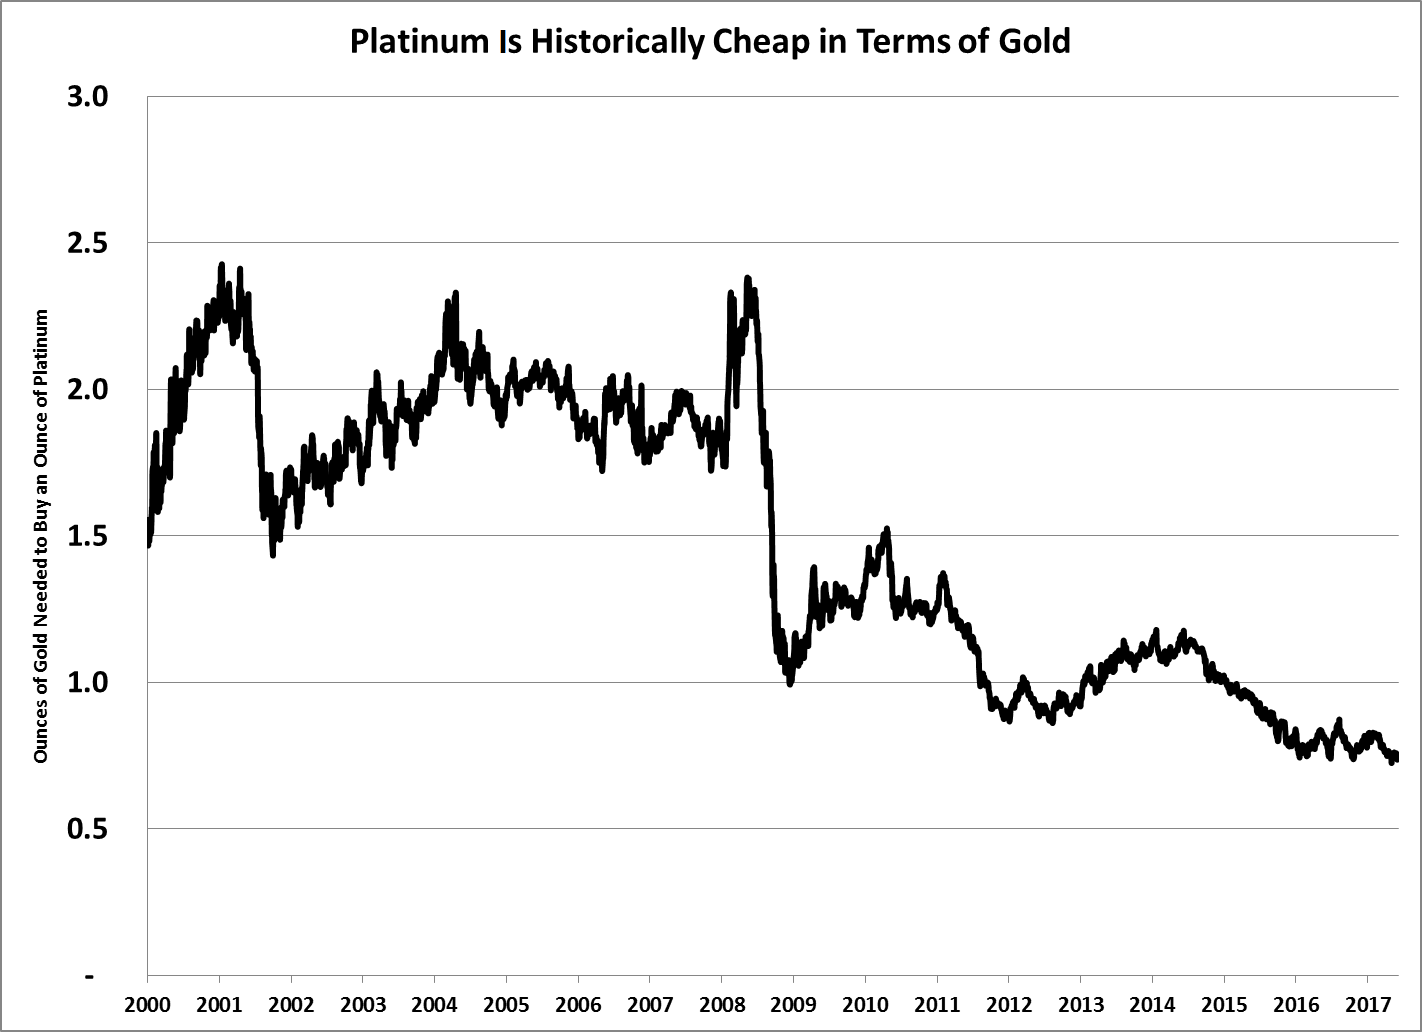 The platinum supply is running out … but the market doesn't care. Platinum has lost ground to gold consistently since 2008.